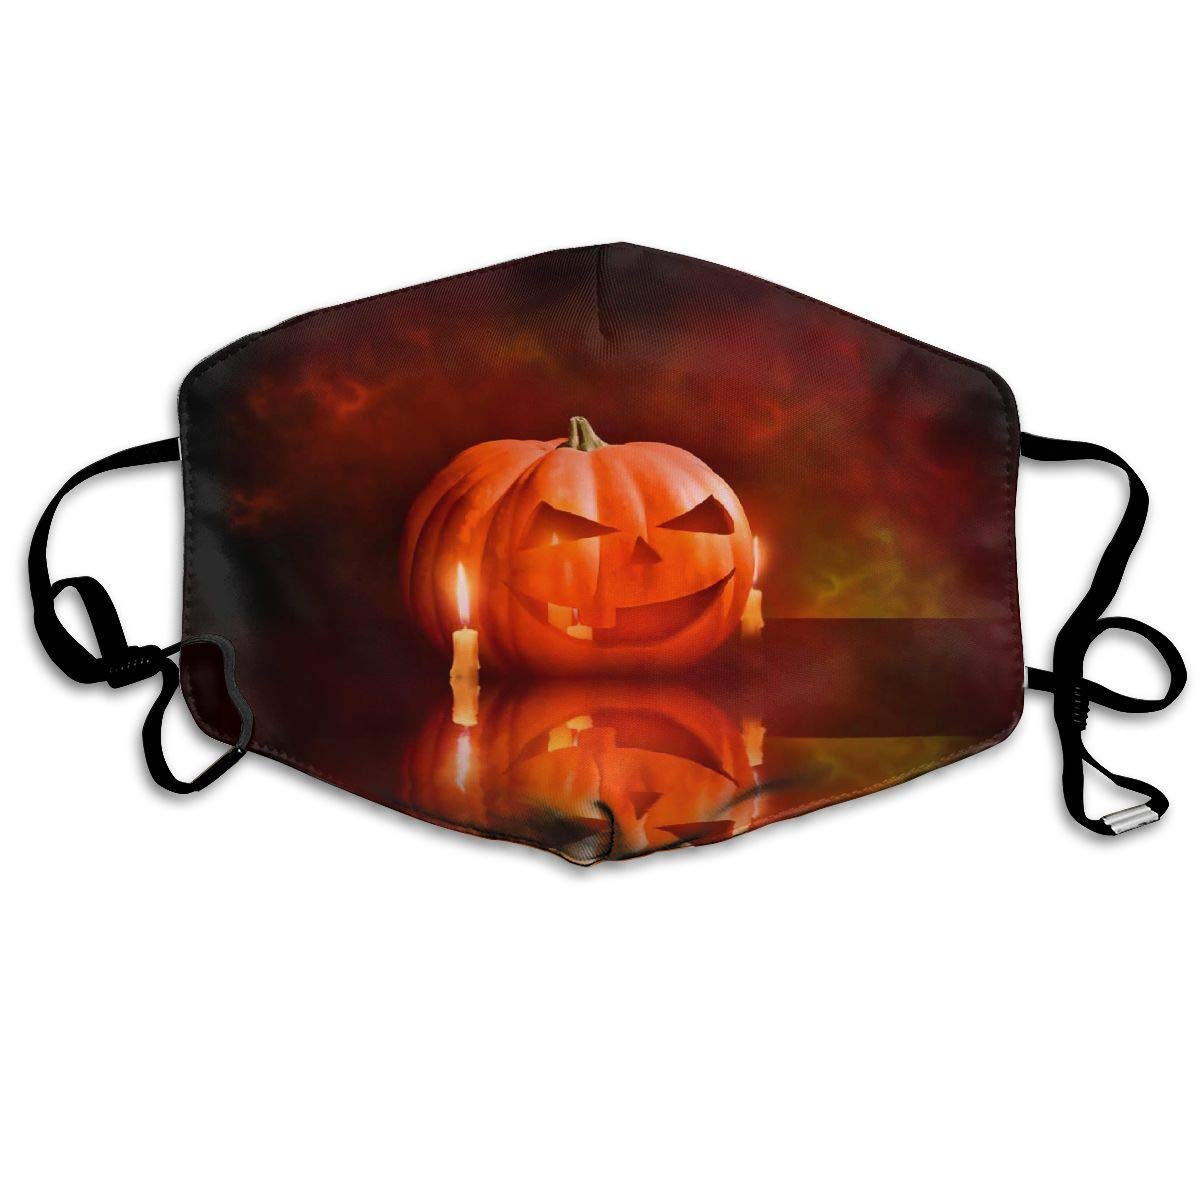 Daawqee Máscara de Boca, Antipolvo Cubierta de Boca Happy Halloween Print Reusable Washable Earloop Máscara de Boca for Men Women